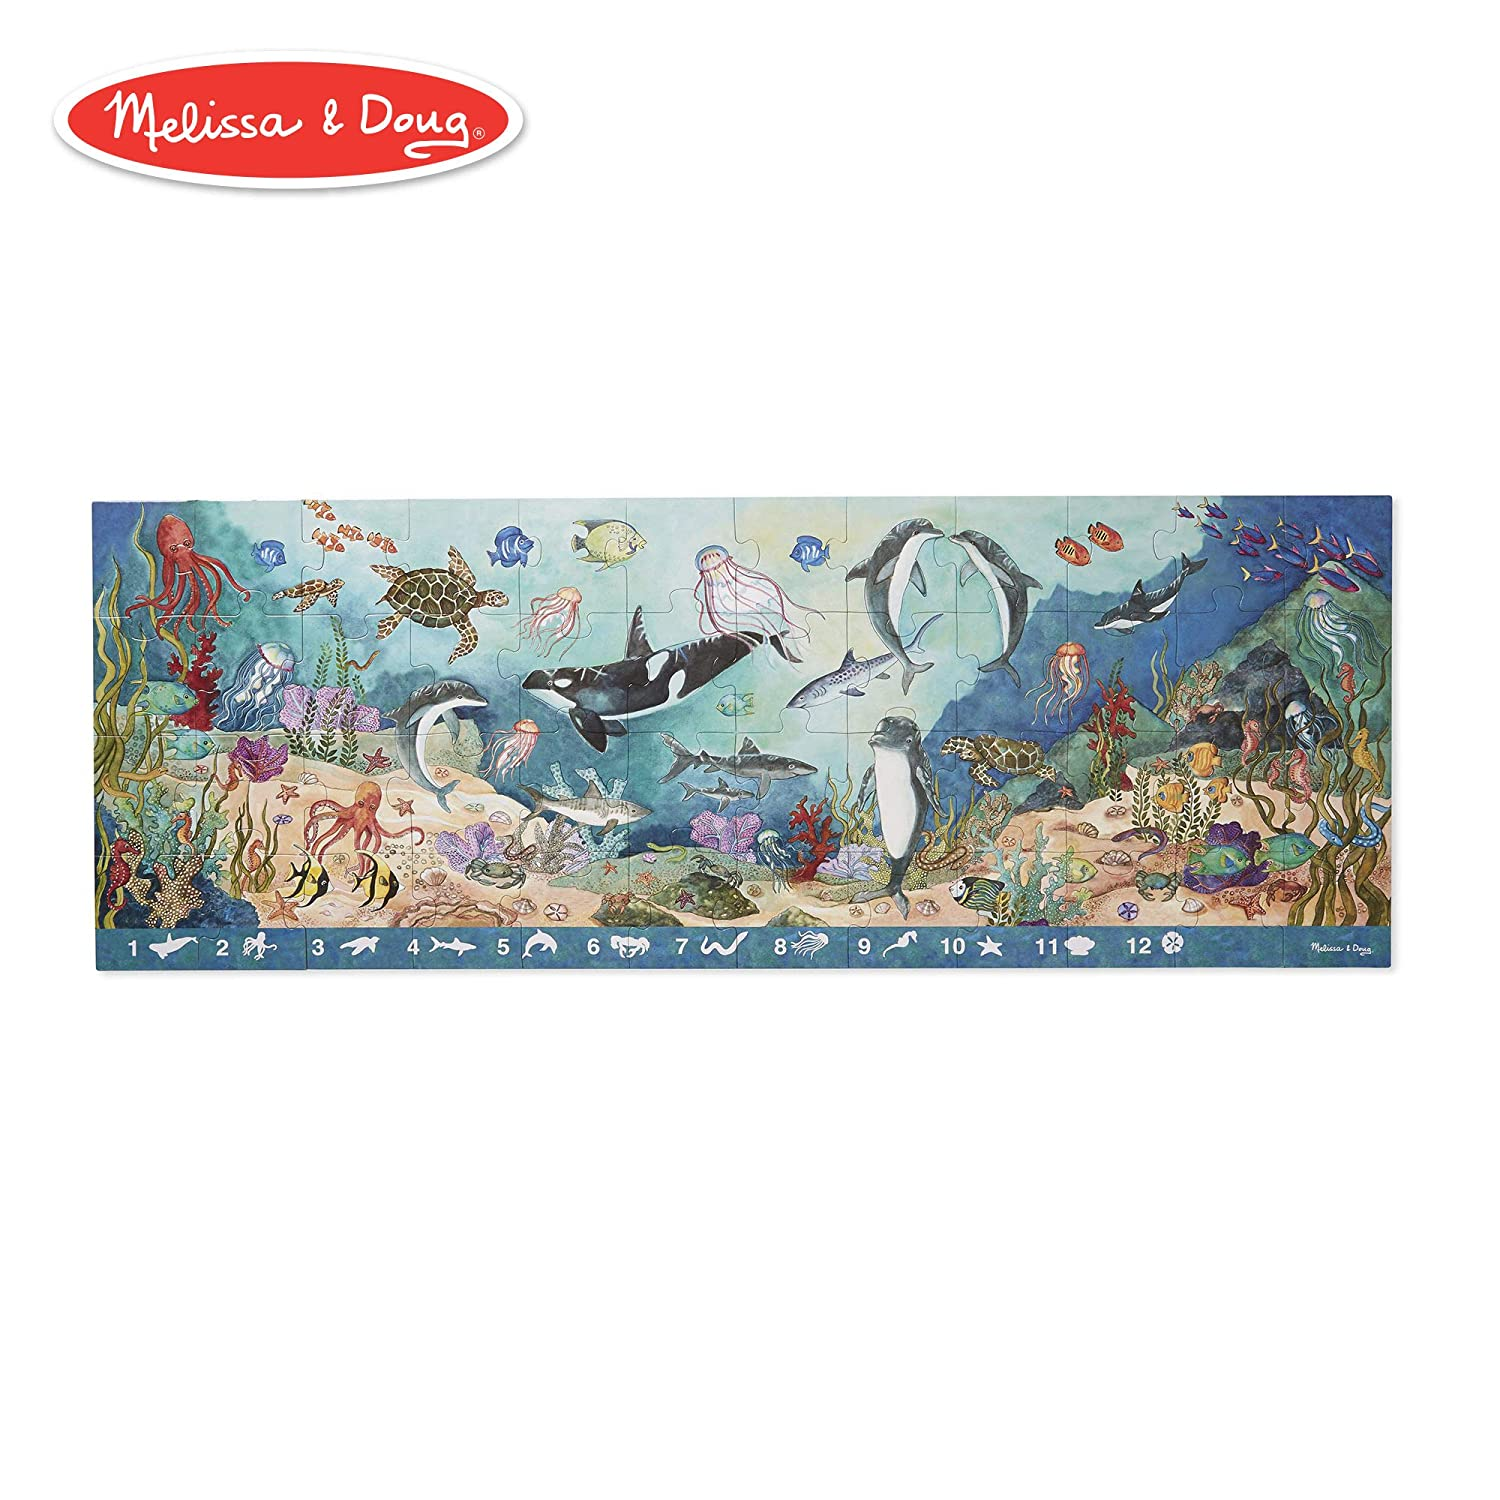 Melissa & Doug Search & Find Under the Sea Floor Puzzle (Preschool, Sturdy Cardboard Construction, Easy to Clean, 48 Pieces, Over 4 Feet Long)